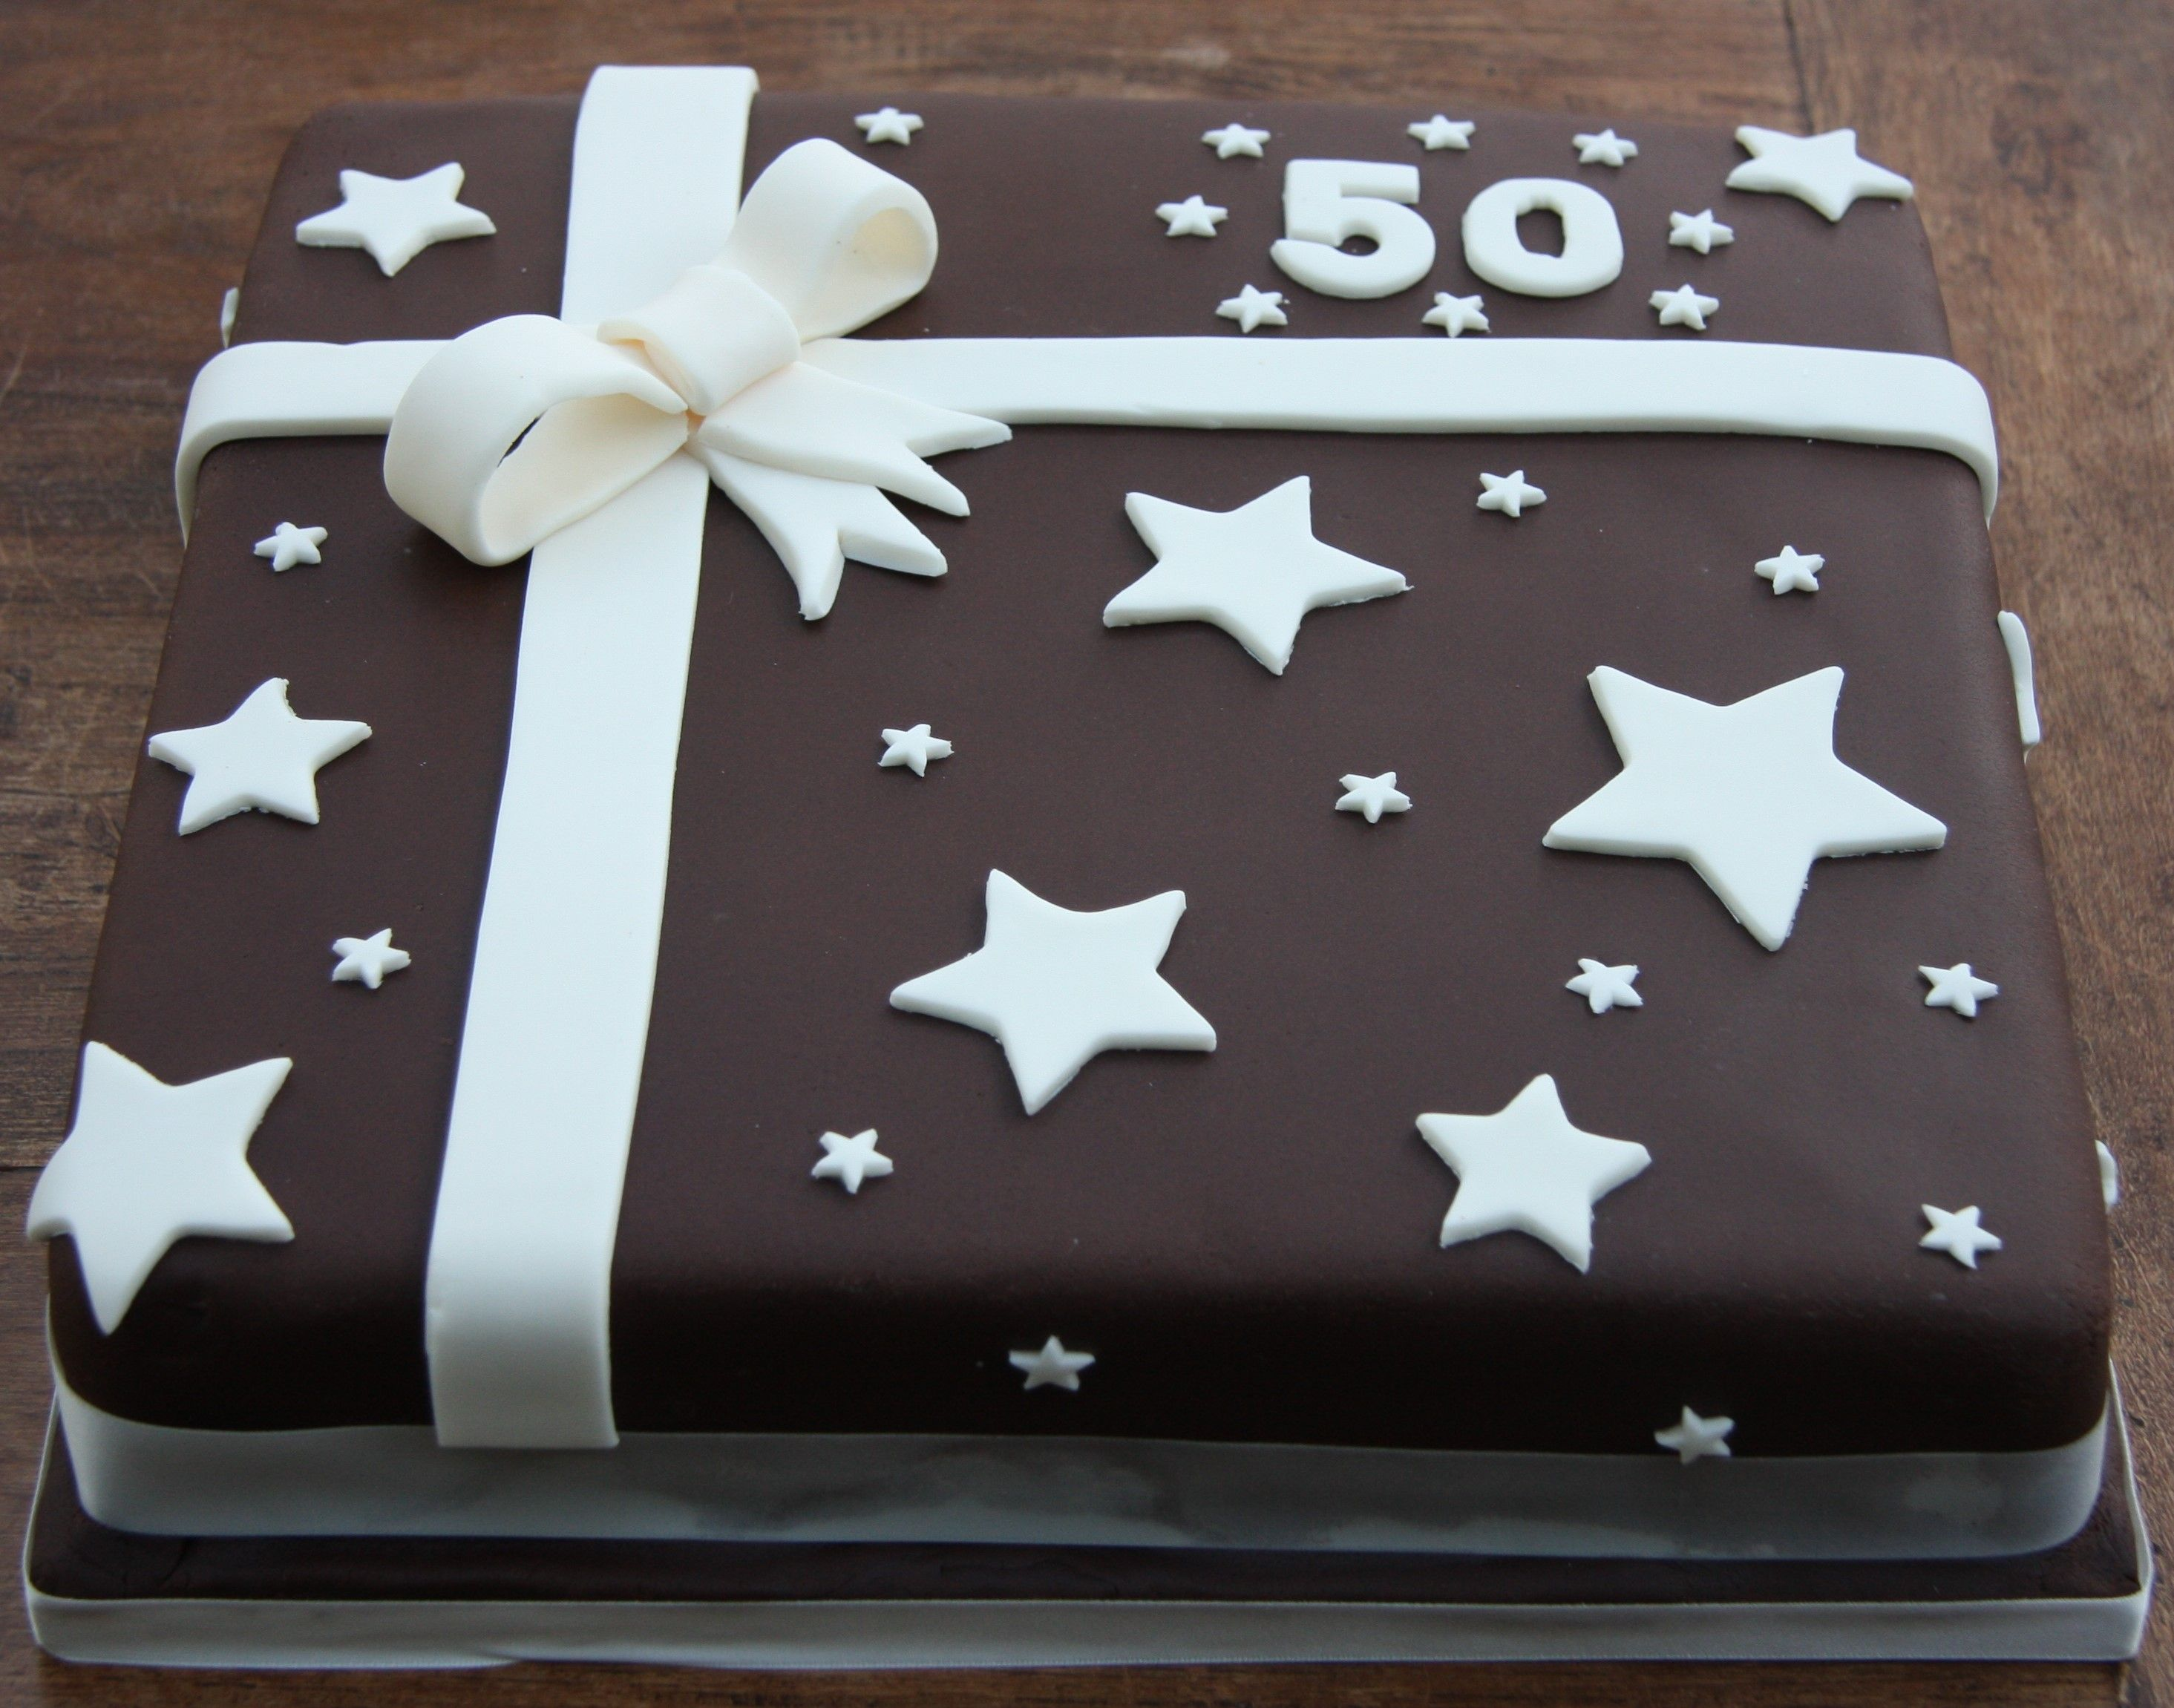 Collection of 50th Birthday cake images for mom dad Share it